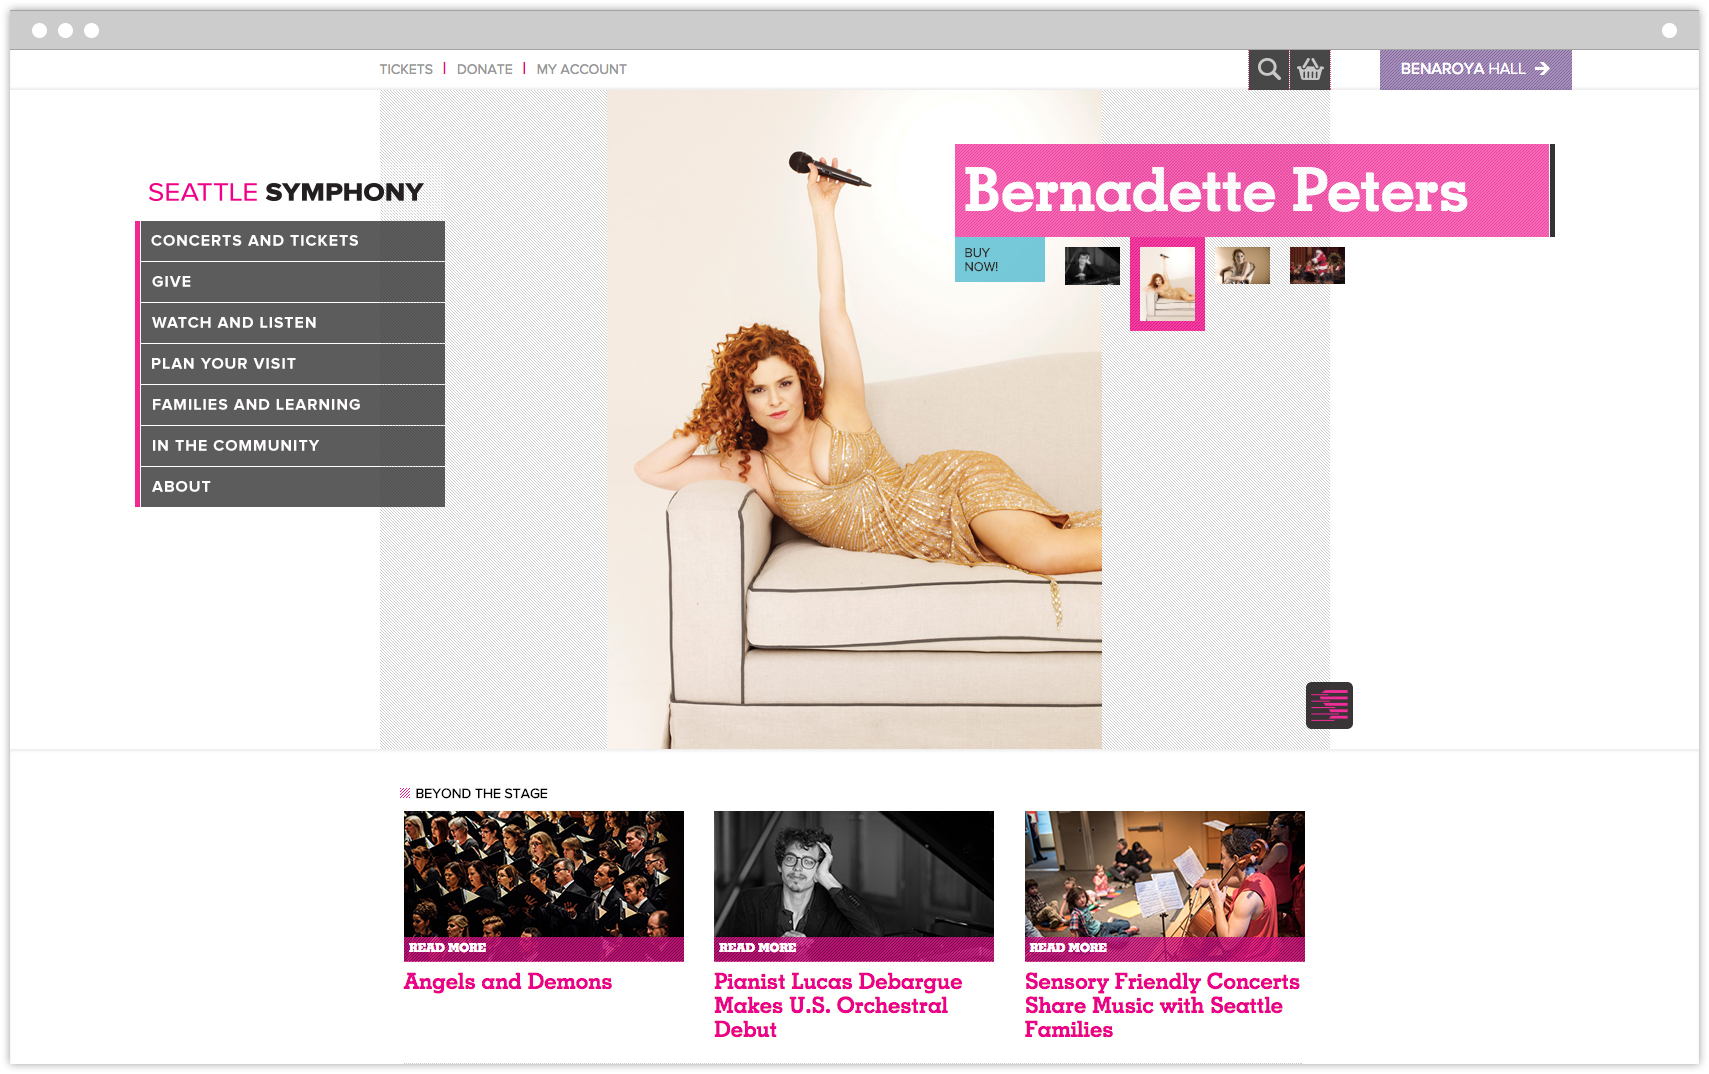 Seattle Symphony Orchestra homepage featuring Bernadette Peters